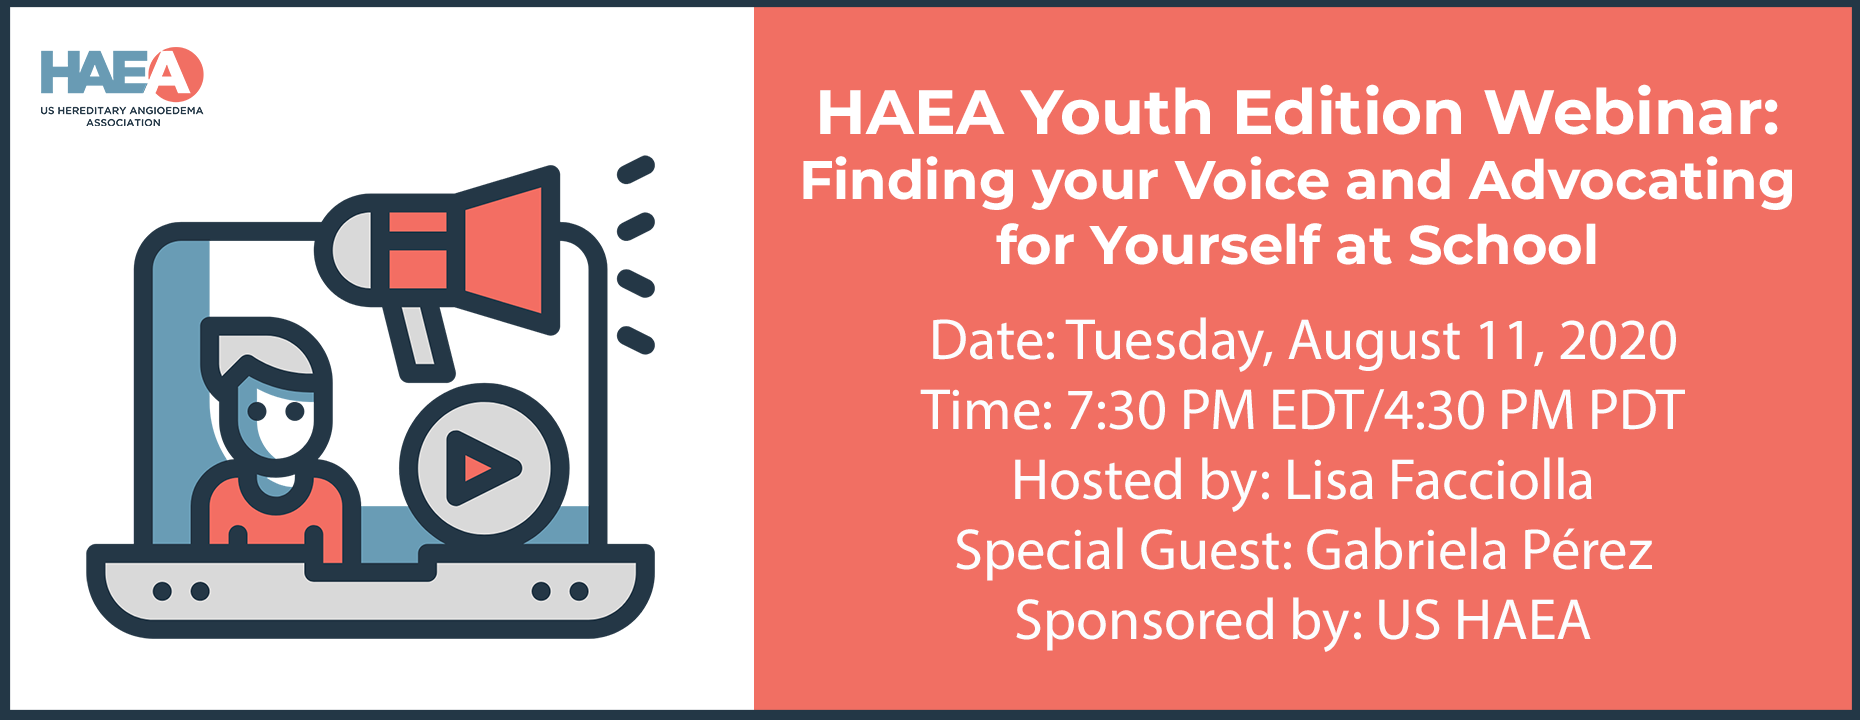 HAEA Youth Edition Webinar: Finding your Voice and Advocating for Yourself at School